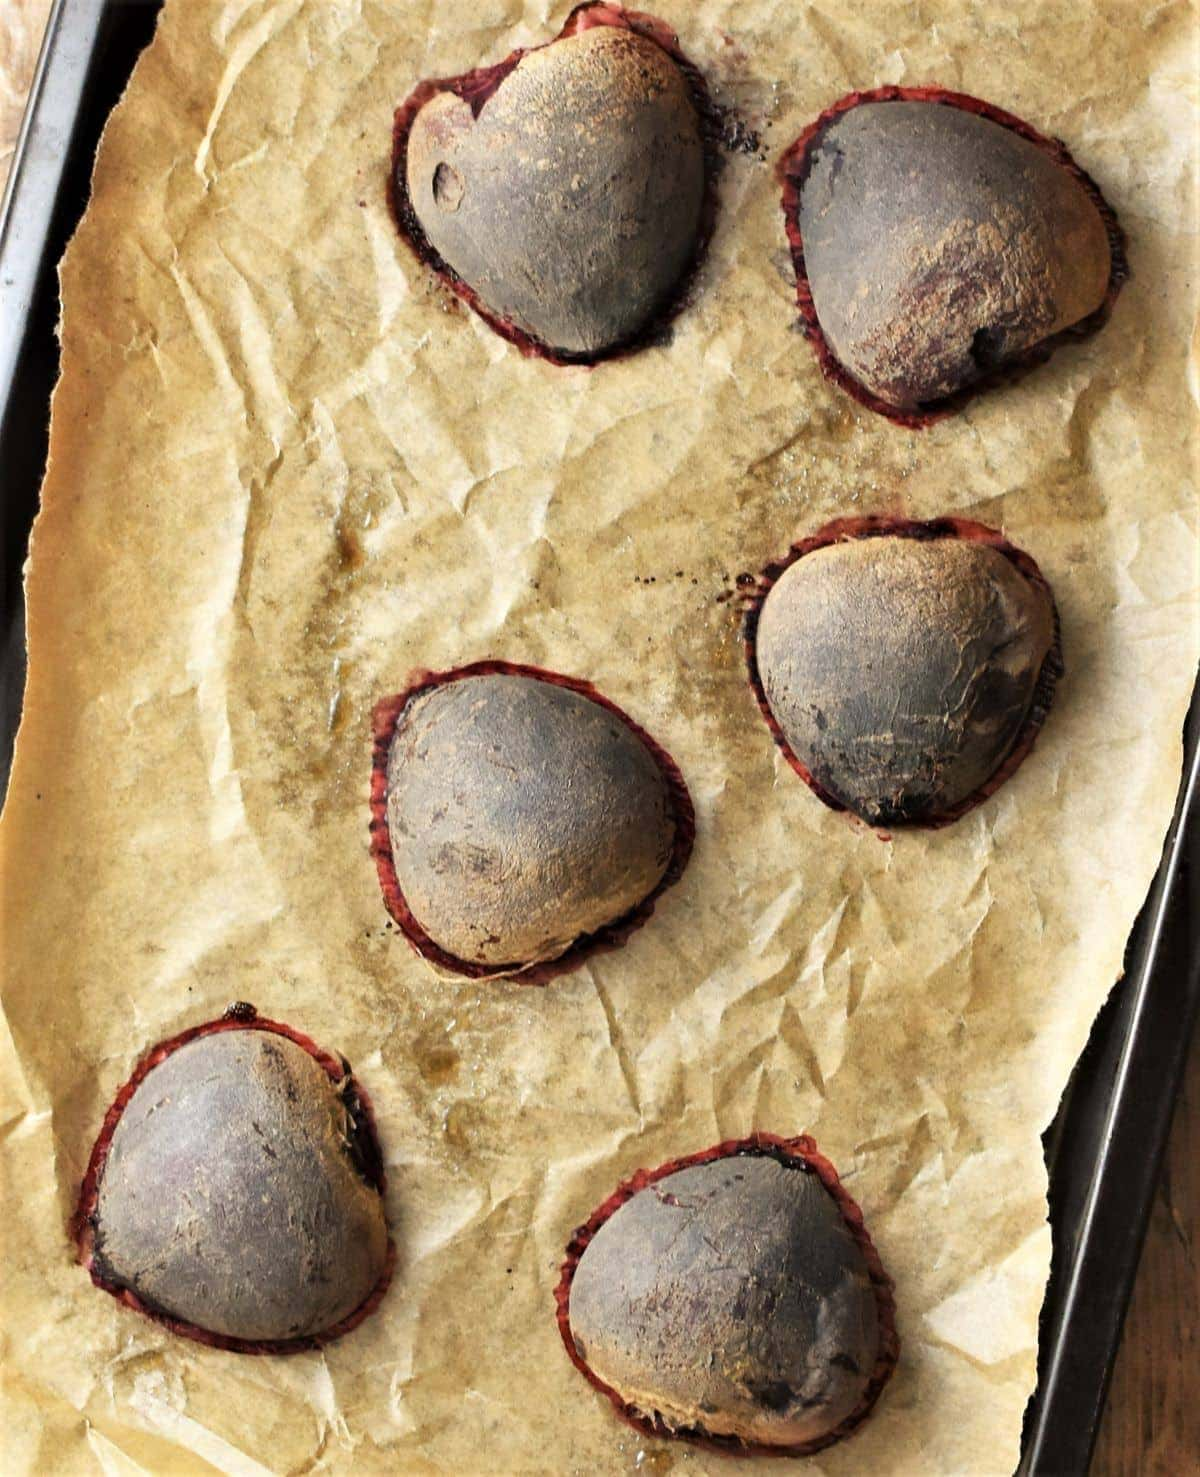 6 roasted beetroot halves on top of parchment.